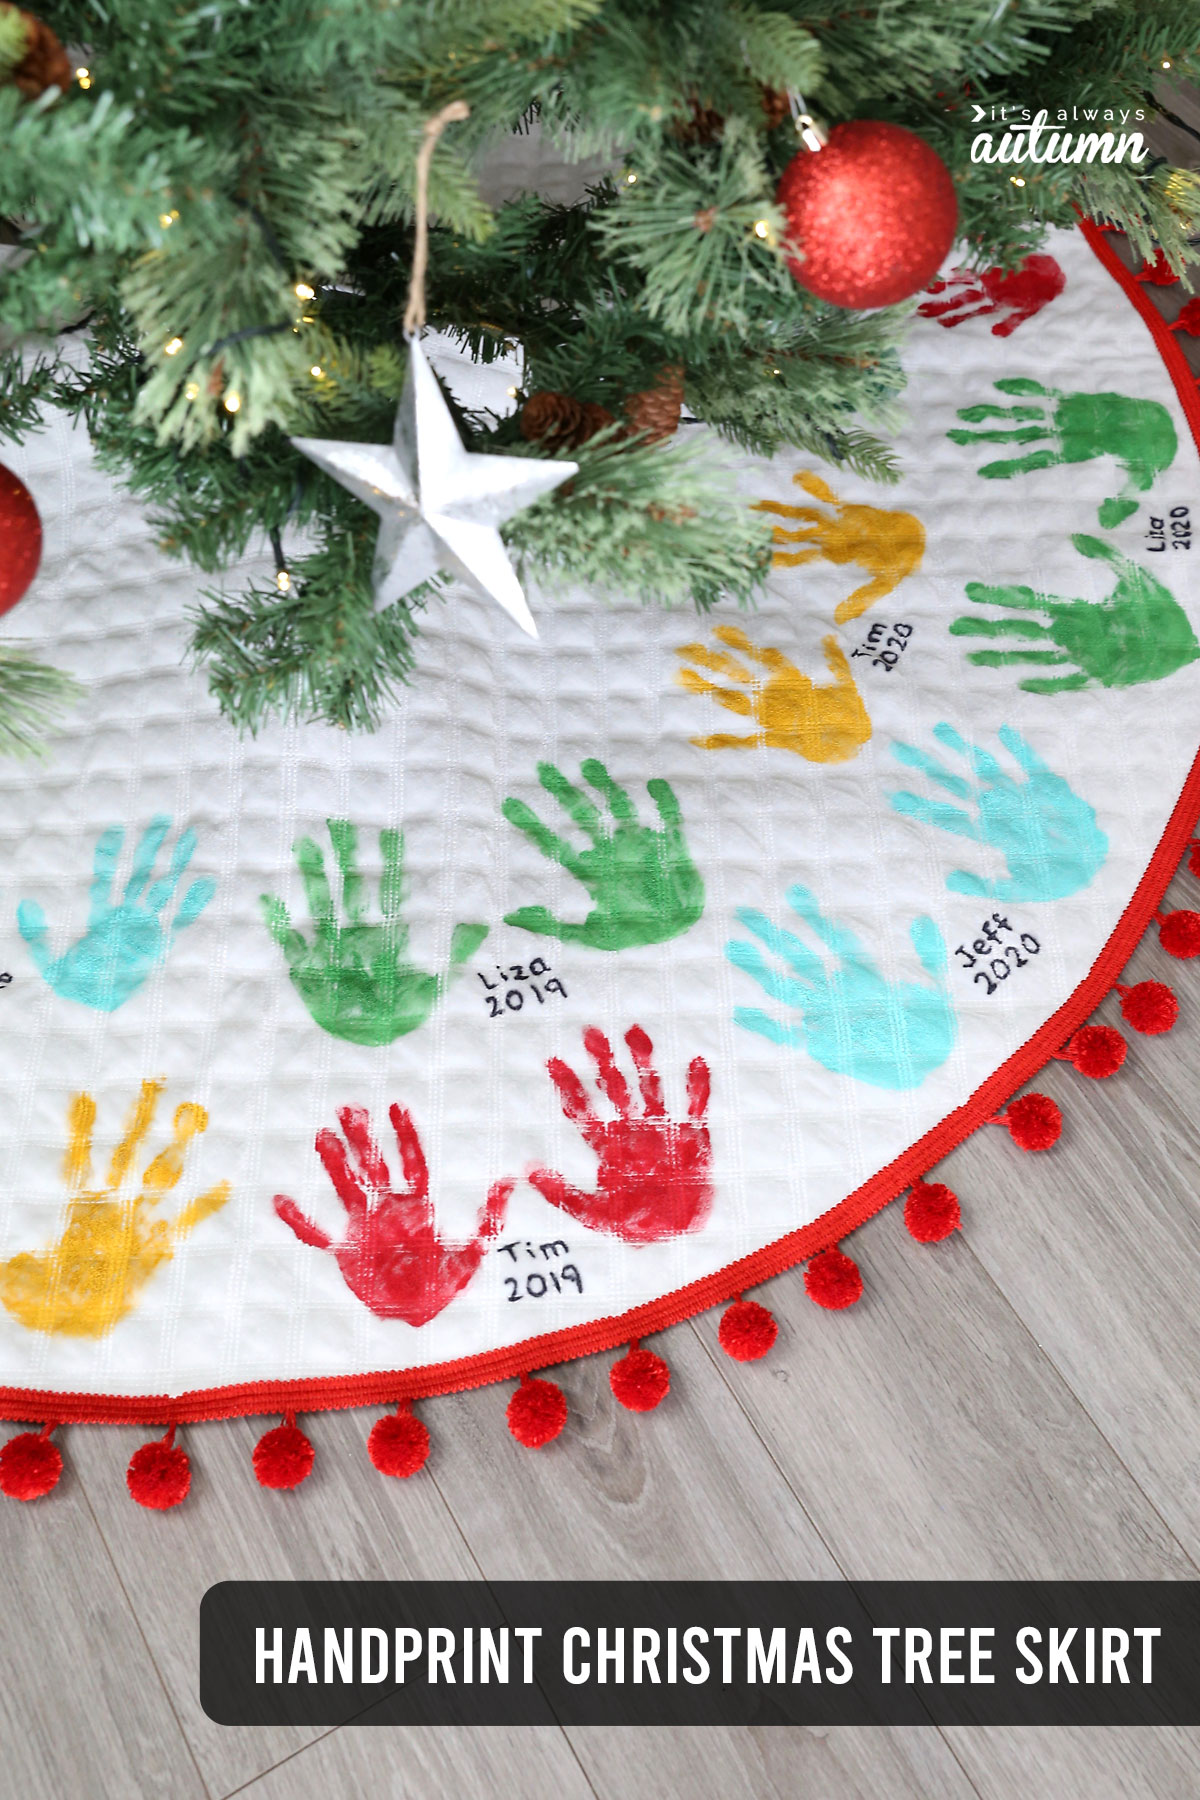 Christmas tree skirt decorated with handprints and names, trimmed with red pom poms